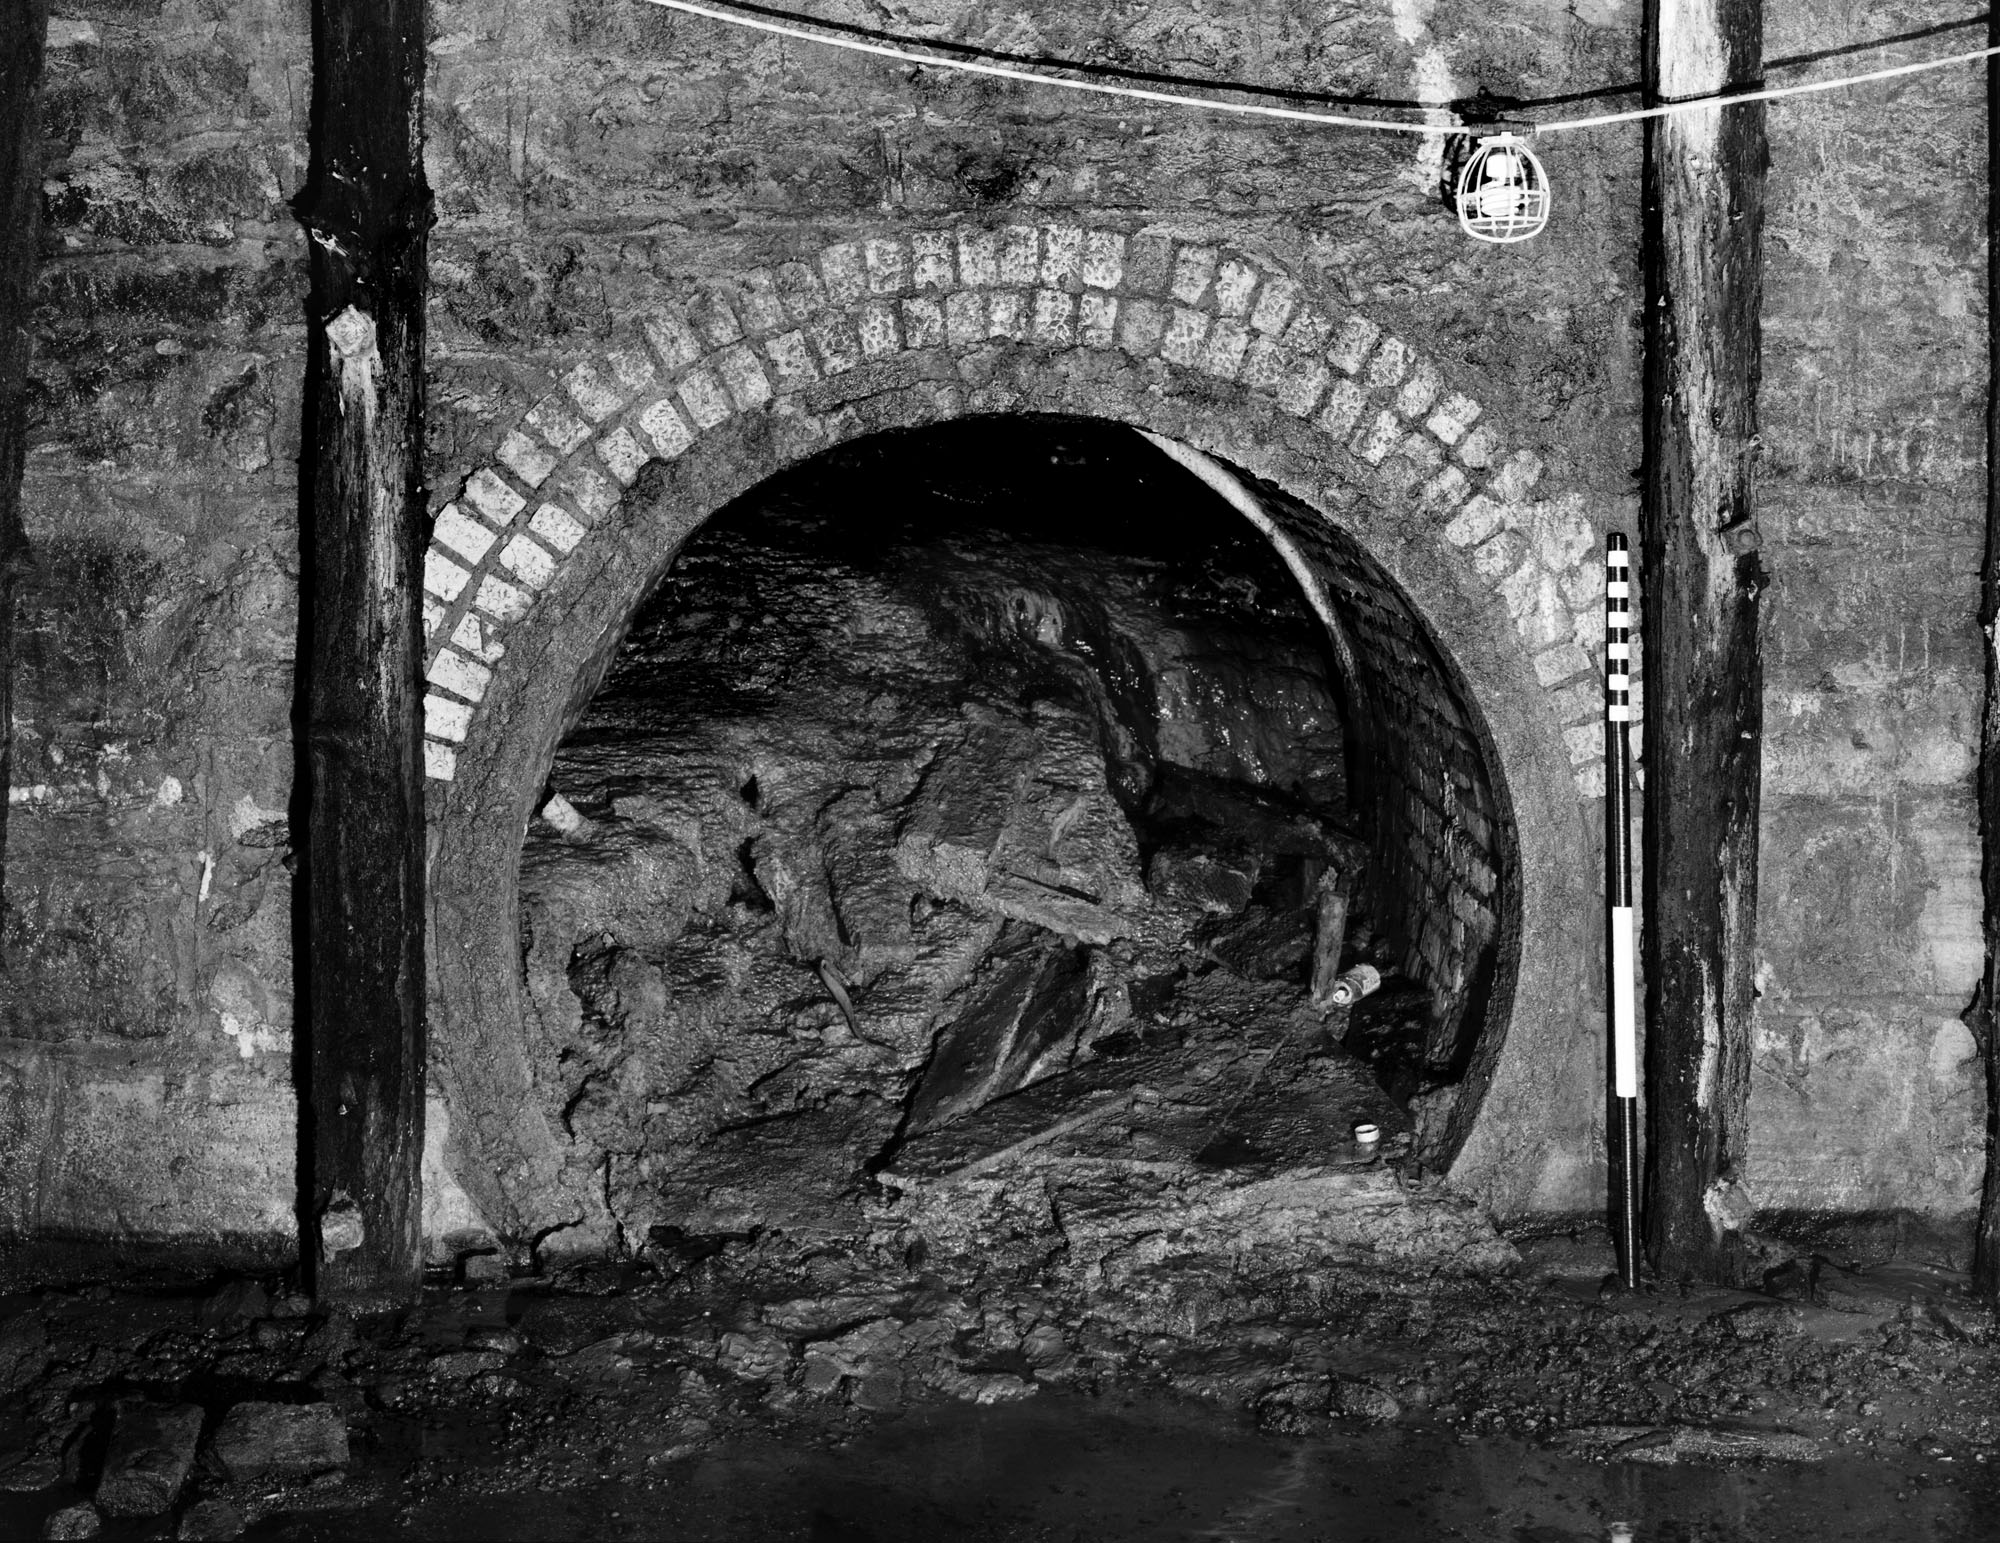 Tunnel to Phoenix Mill in headrace wall - MHRP HE-MPC-9995-06 (Please credit Daniel R. Pratt and the Minnesota Historic Property Record)